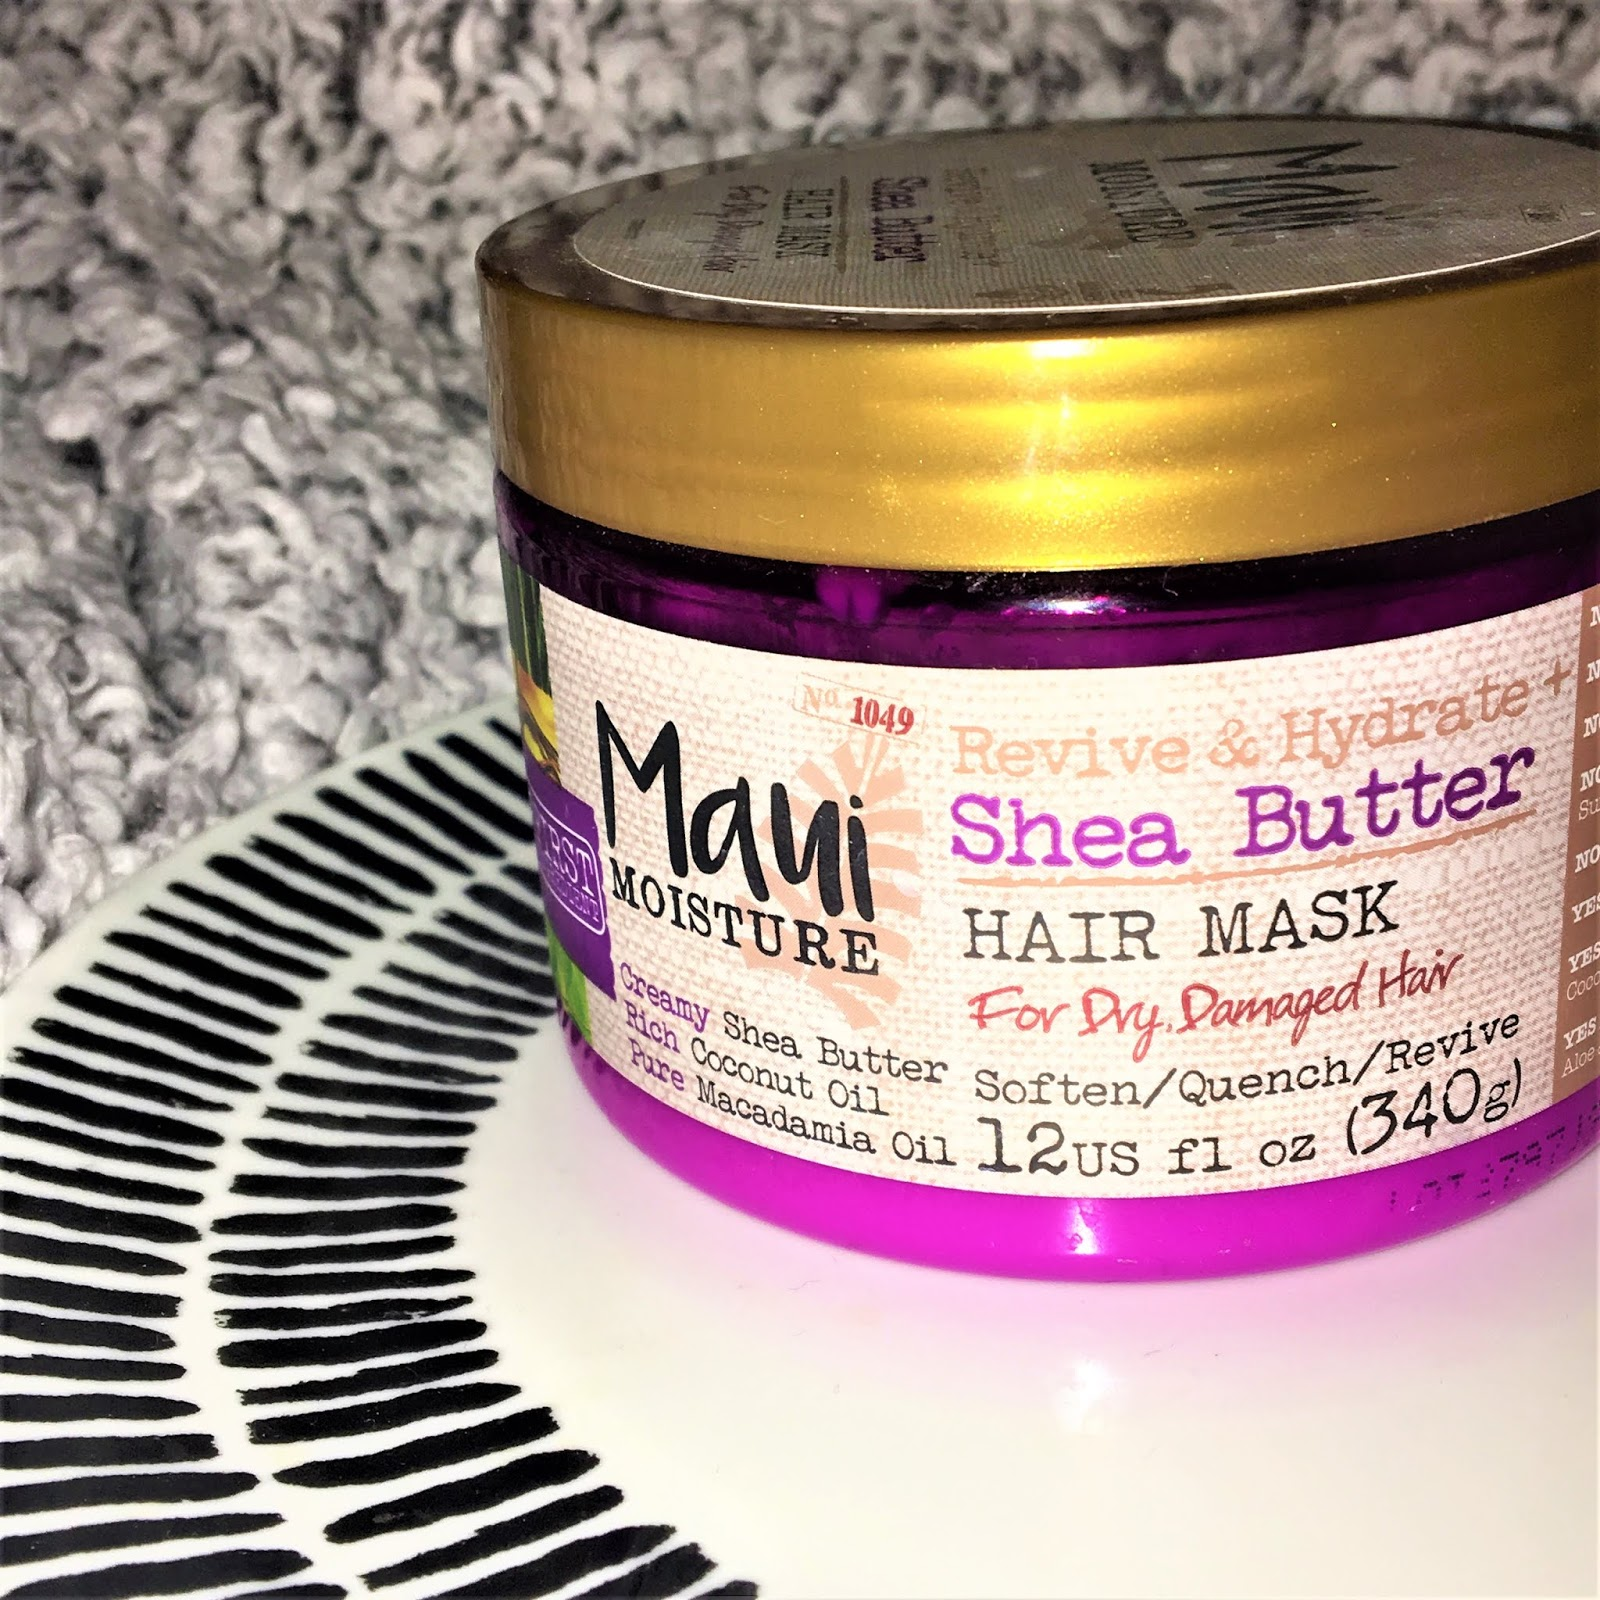 Maui Moisture Revive & Hydrate Shea Butter Hair Mask